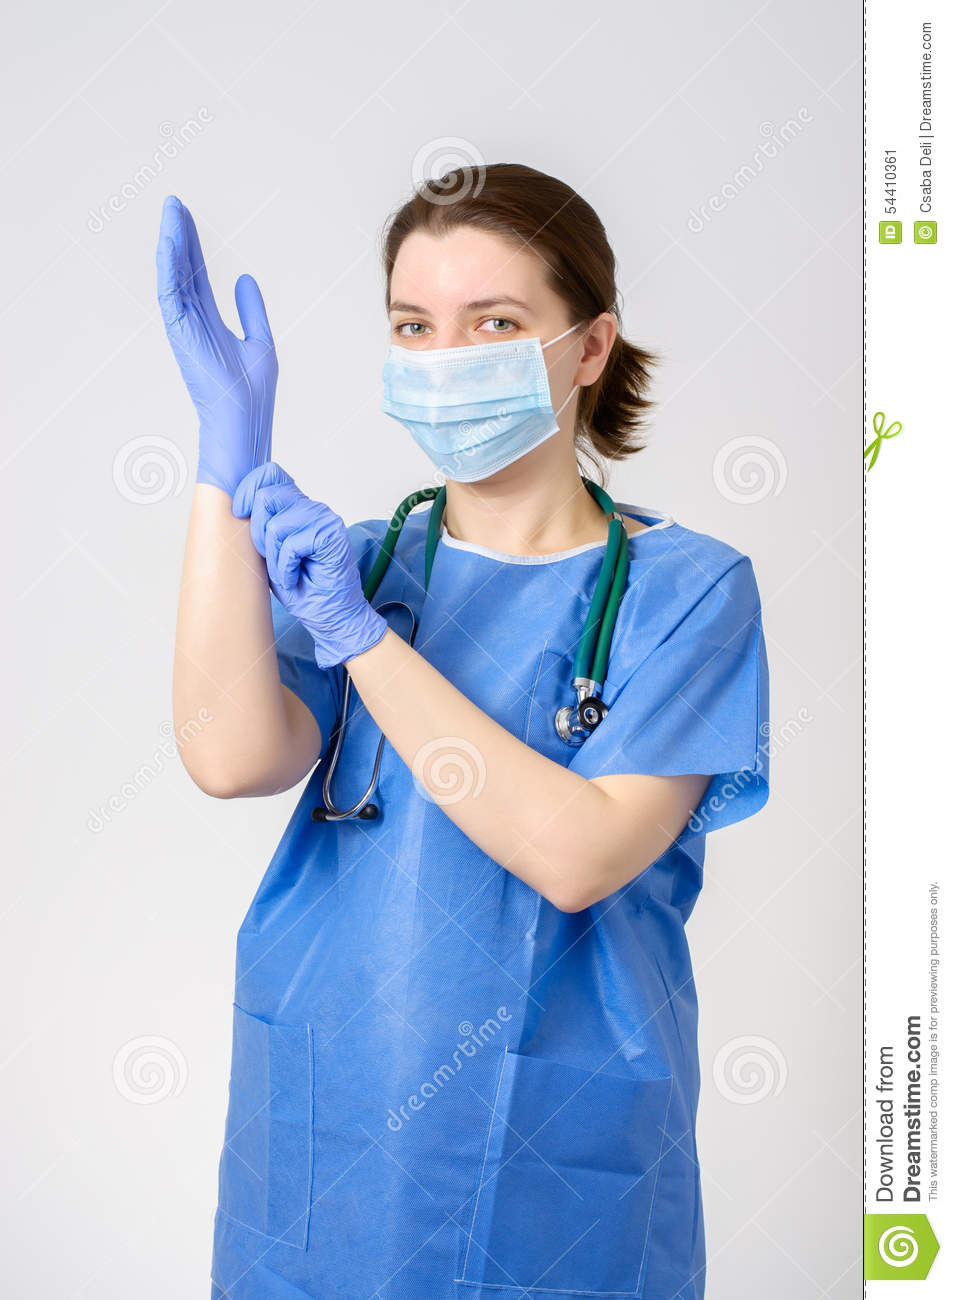 Doctor Putting On Blue Surgical Gloves Stock Image - Image of face ...